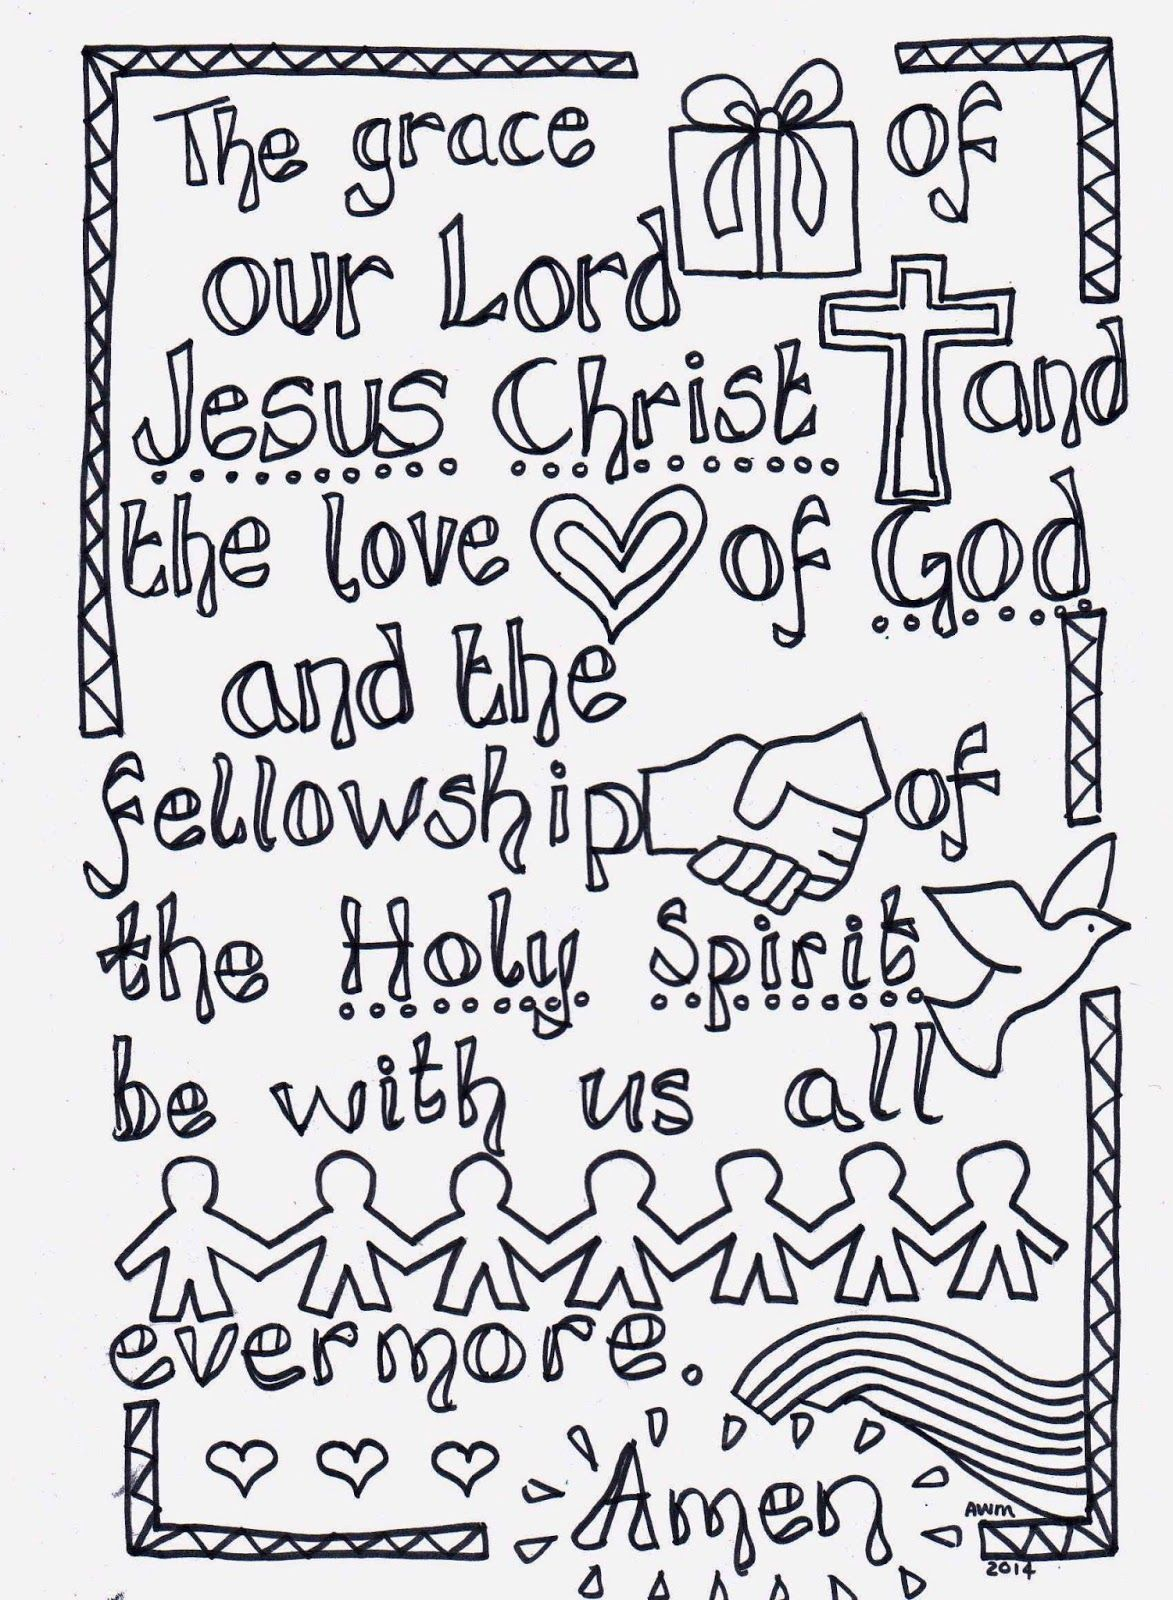 Flame creative childrenus ministry colour in prayers